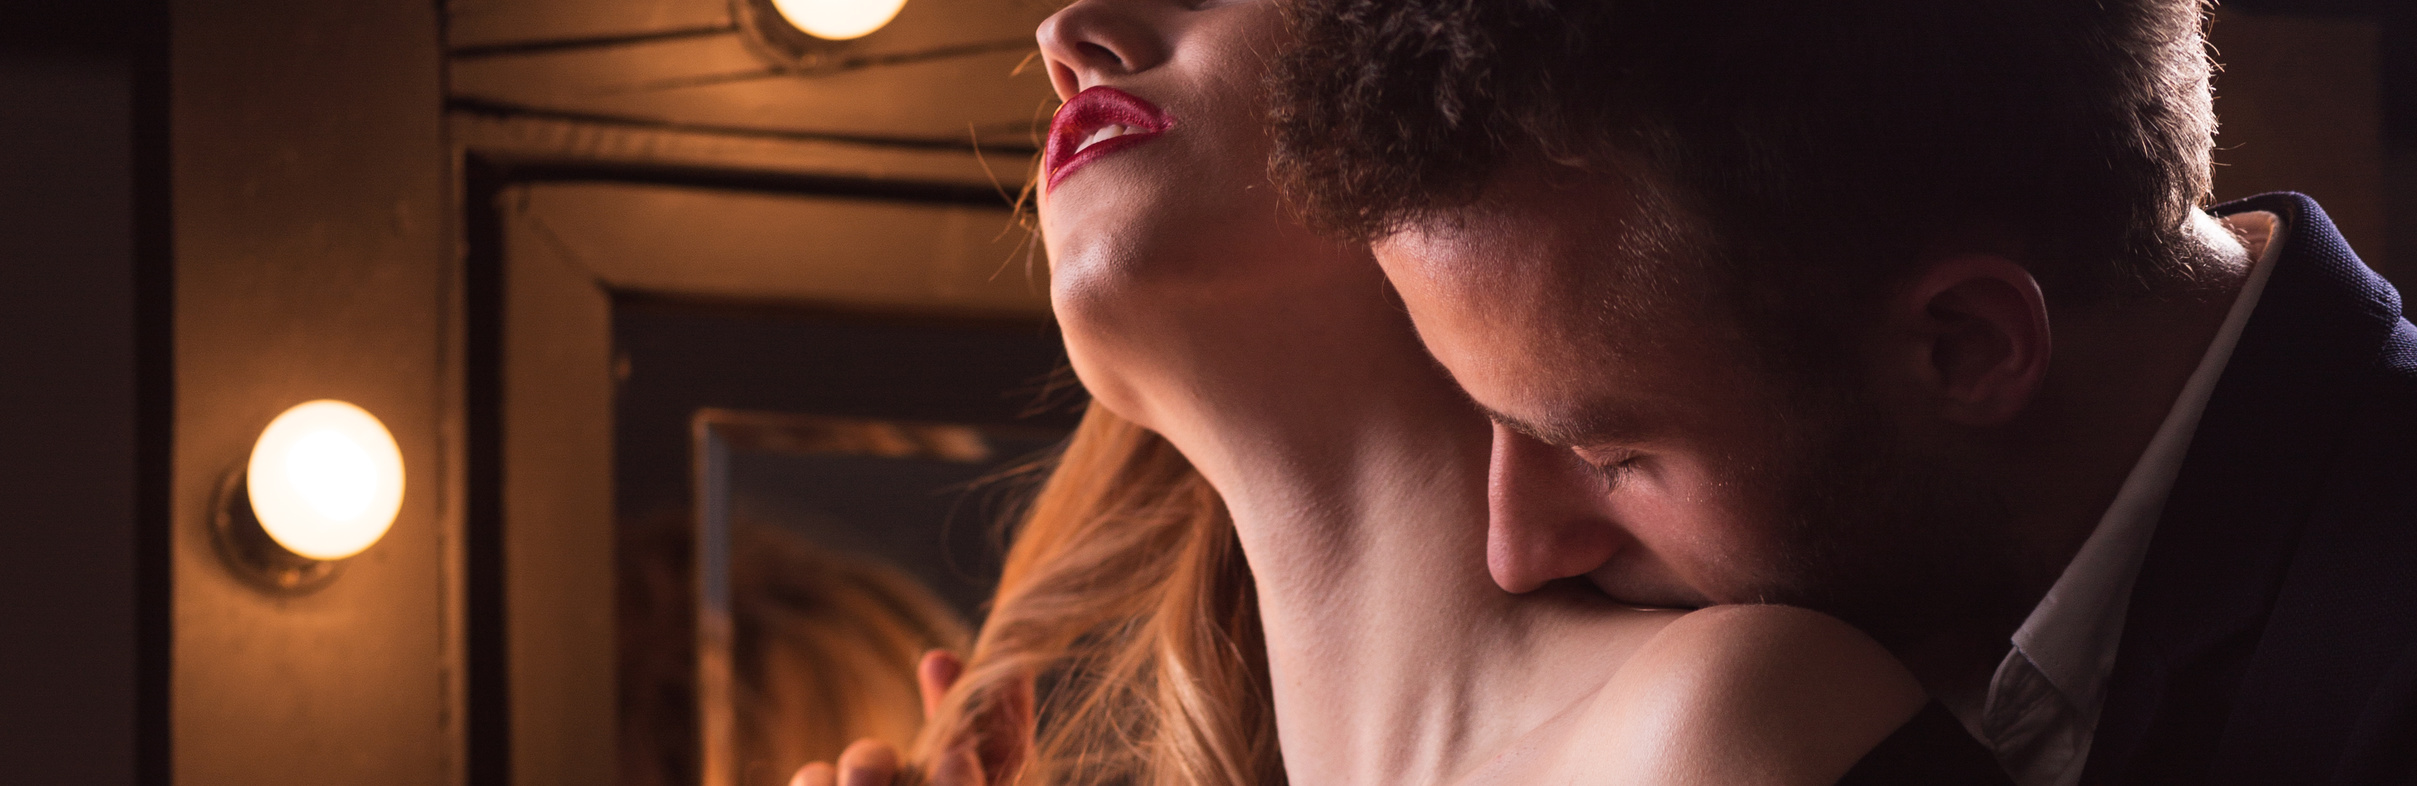 Man is kissing a woman in the neck